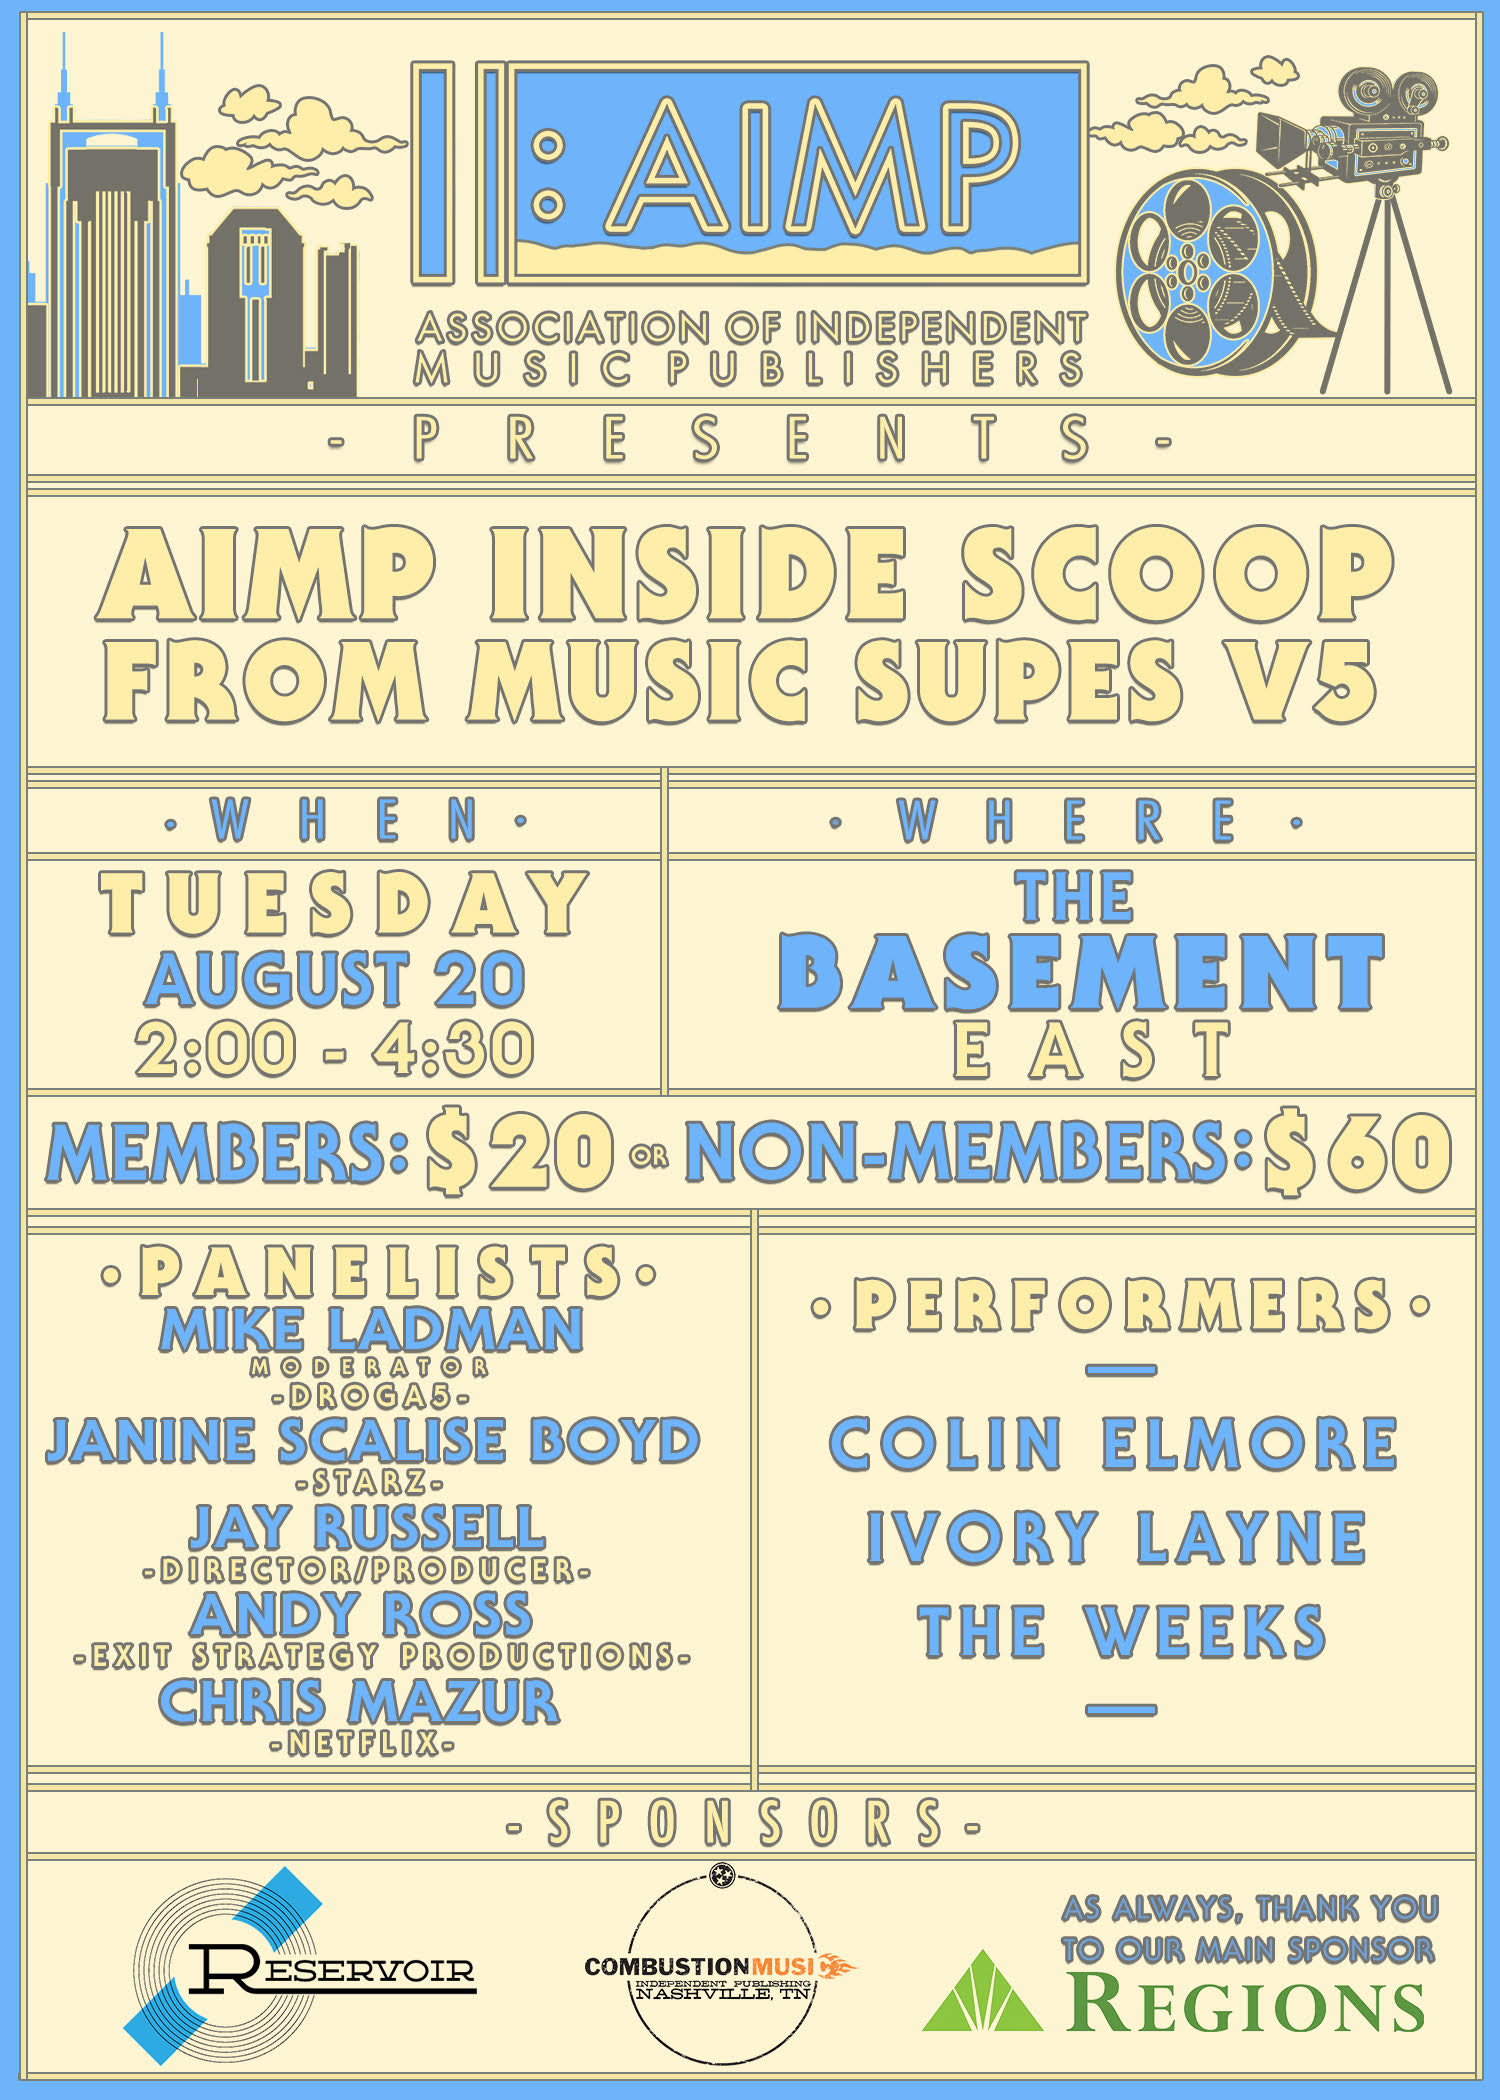 AIMP : Events - AIMP's Inside Scoop From Music Supes, V5